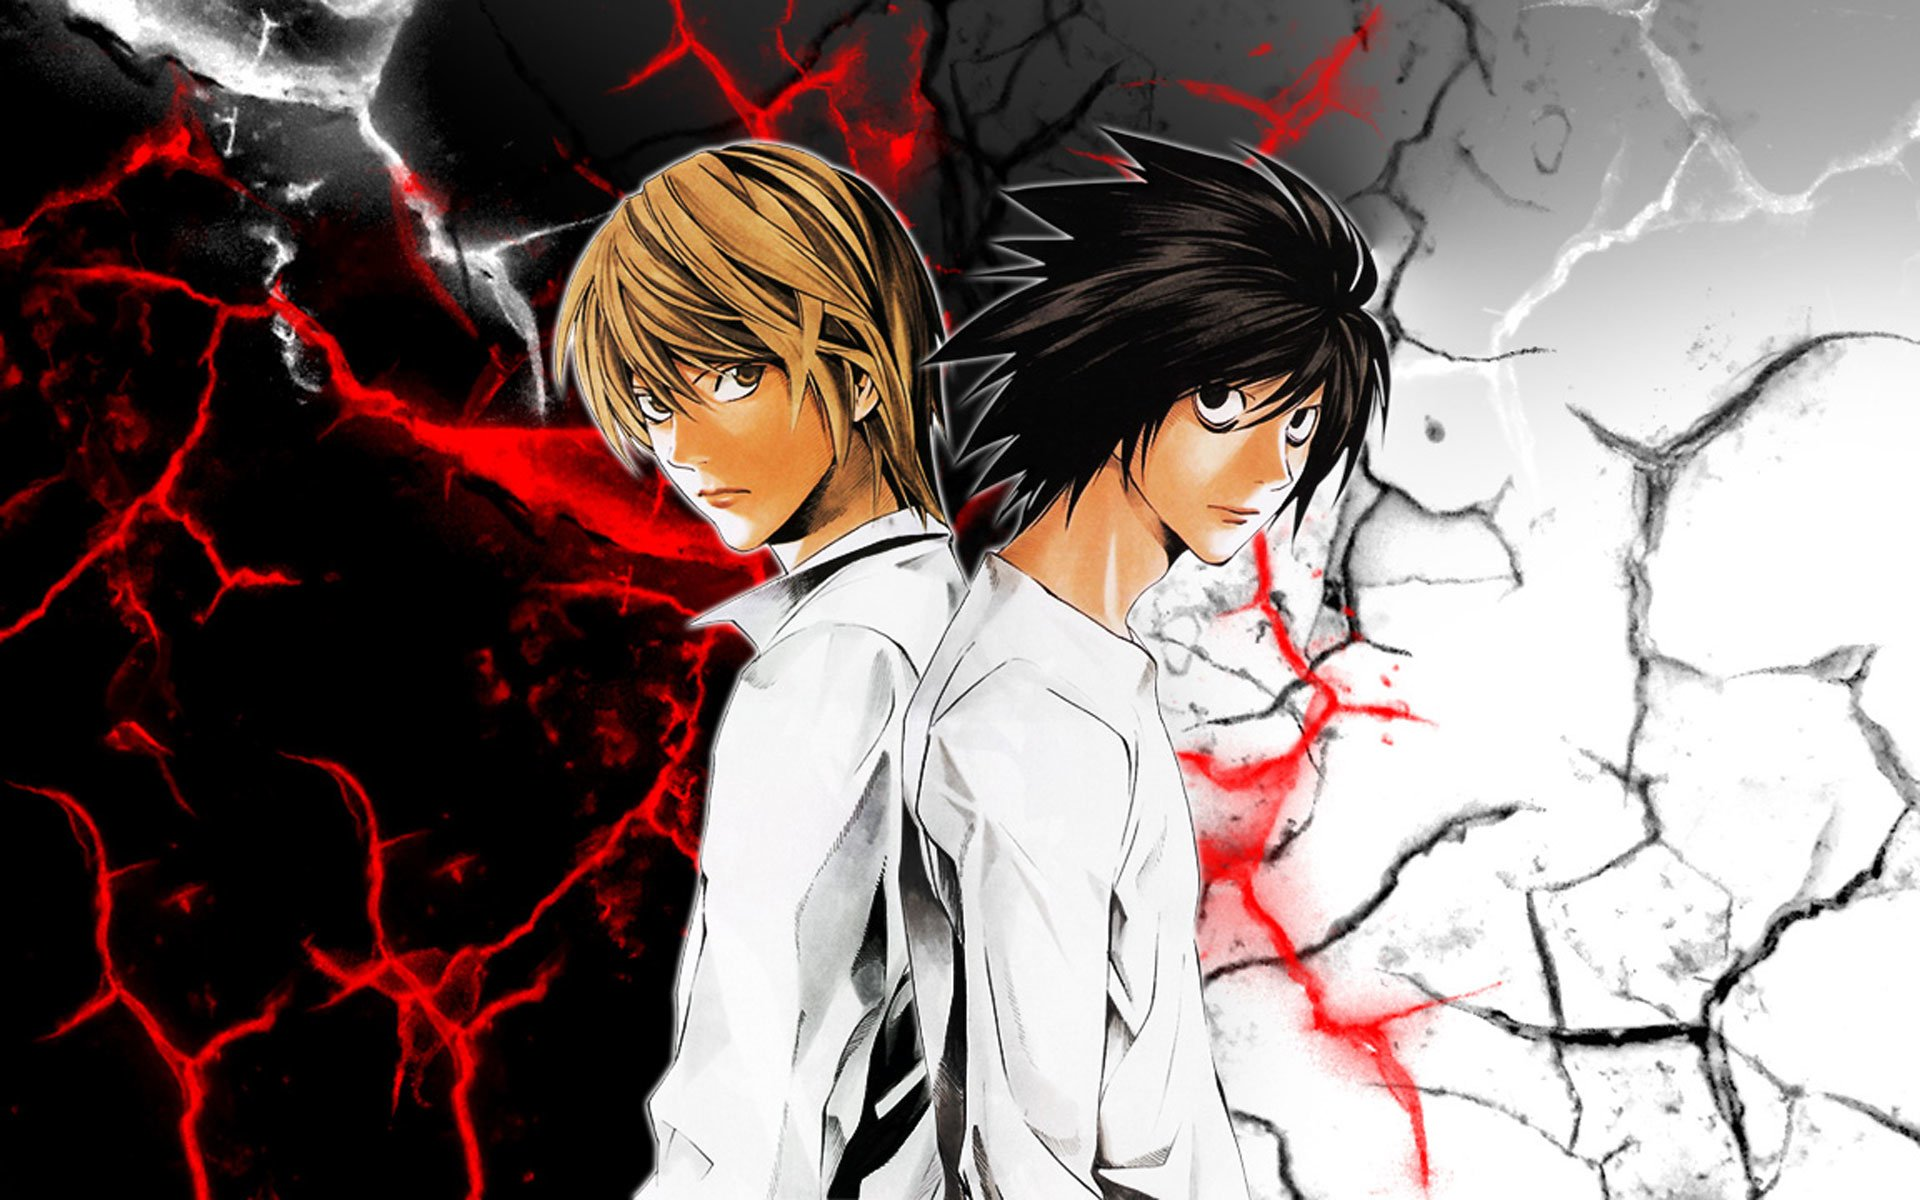 Anime - Death Note  Light Yagami L (Death Note) Wallpaper